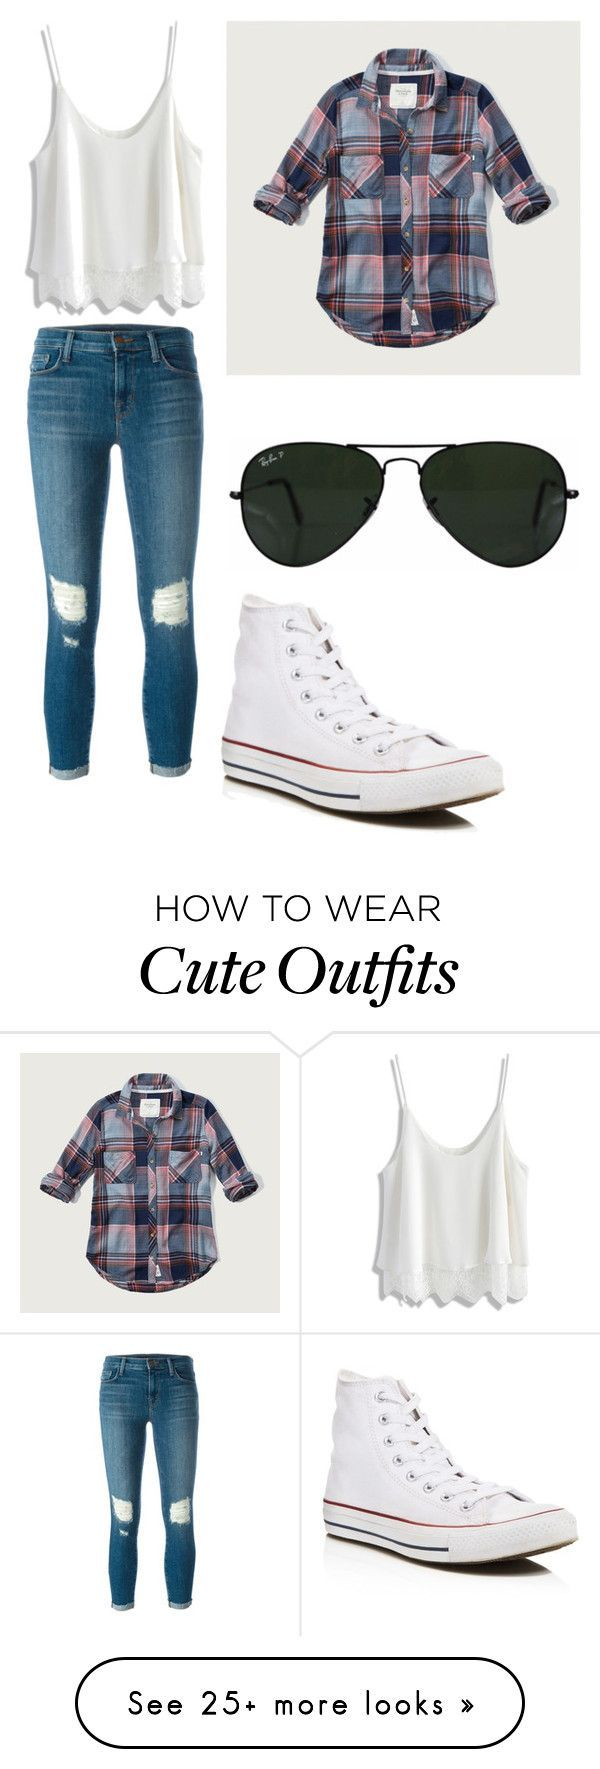 awesome Cute Outfits Sets by http://www.tillsfashiontrends.us/cute-outfits/cute-outfits-sets-3/